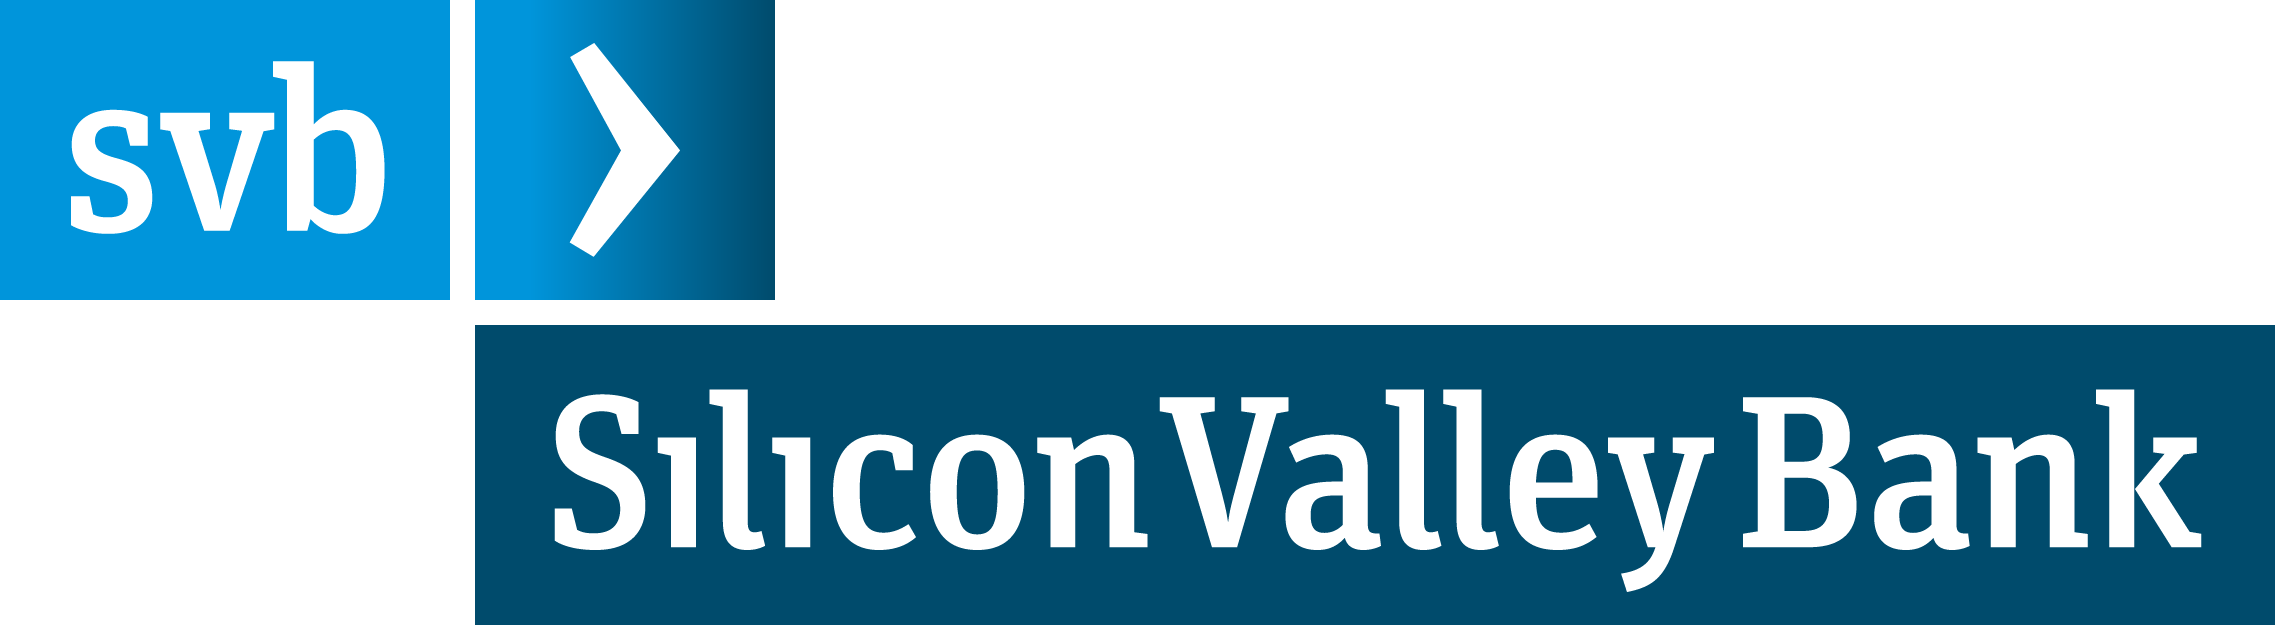 """Silicon Valley Bank Introduces """"Access to Innovation"""" to Increase Opportunities for Underrepresented People in the Innovation Economy Image"""